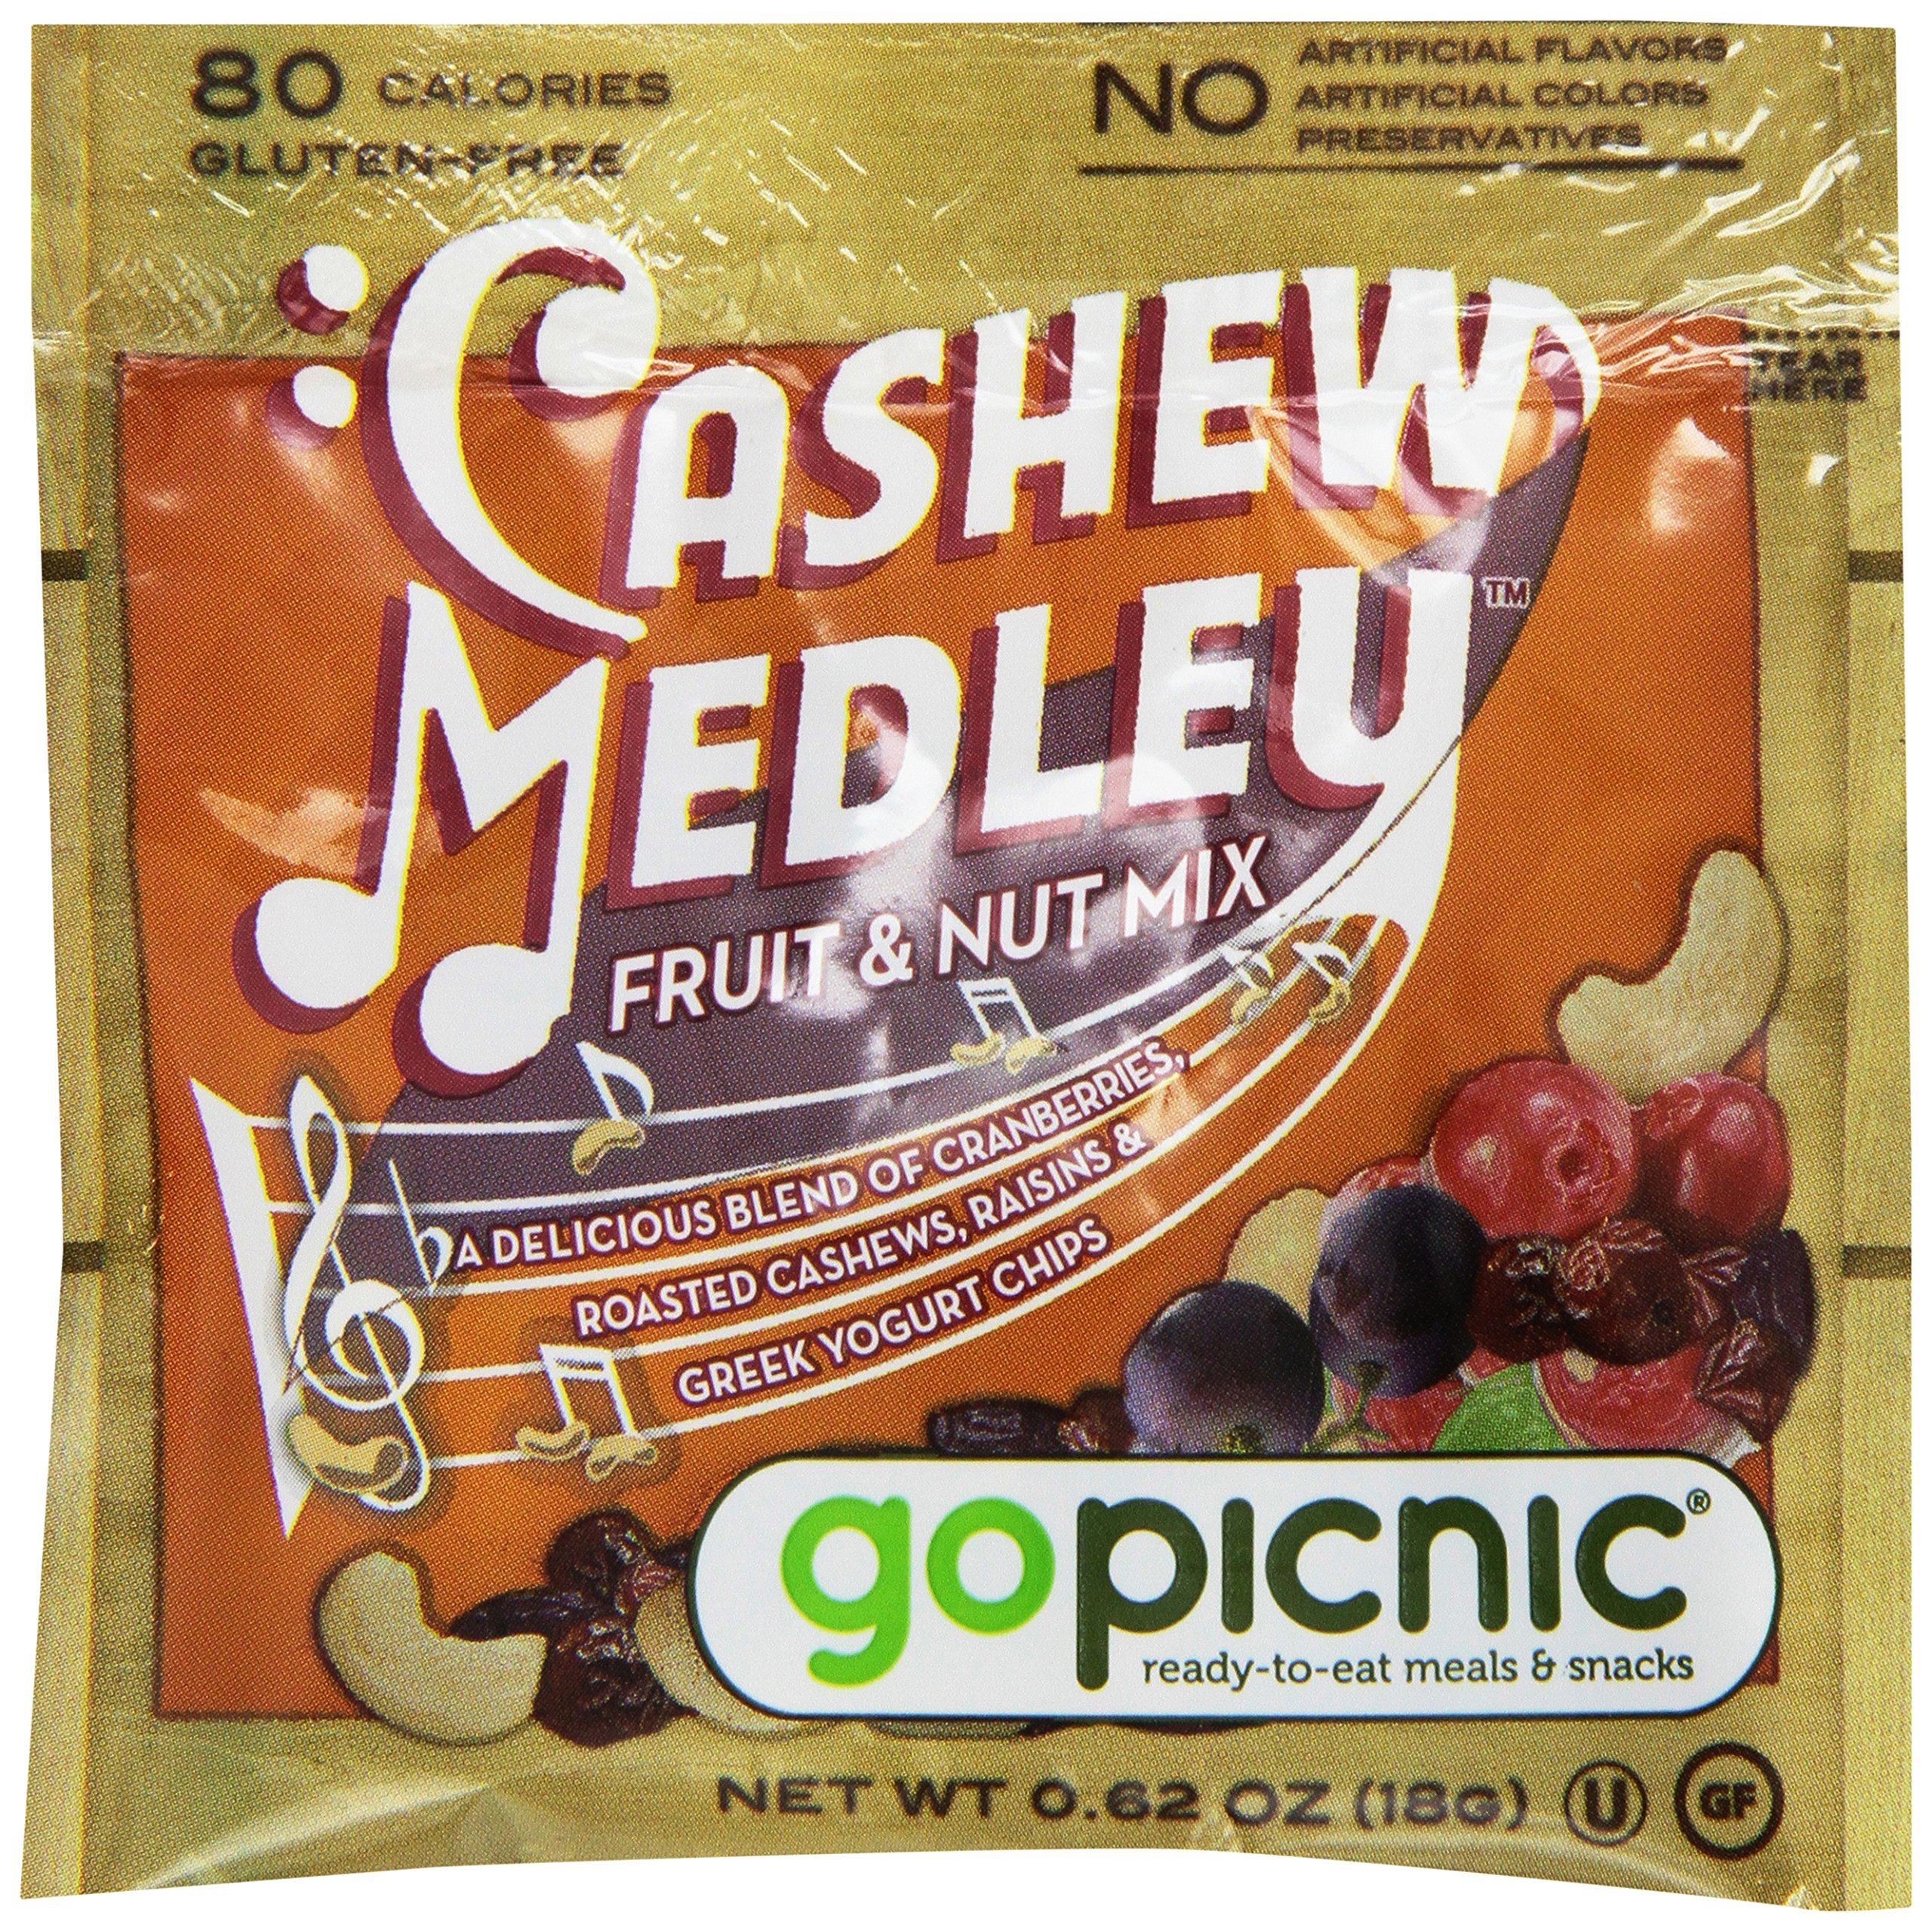 GoPicnic Sweet Perry Orchards Cashew Medley Fruit & Nut Mix, Snack Packs, 0.62 Oz 50 Count